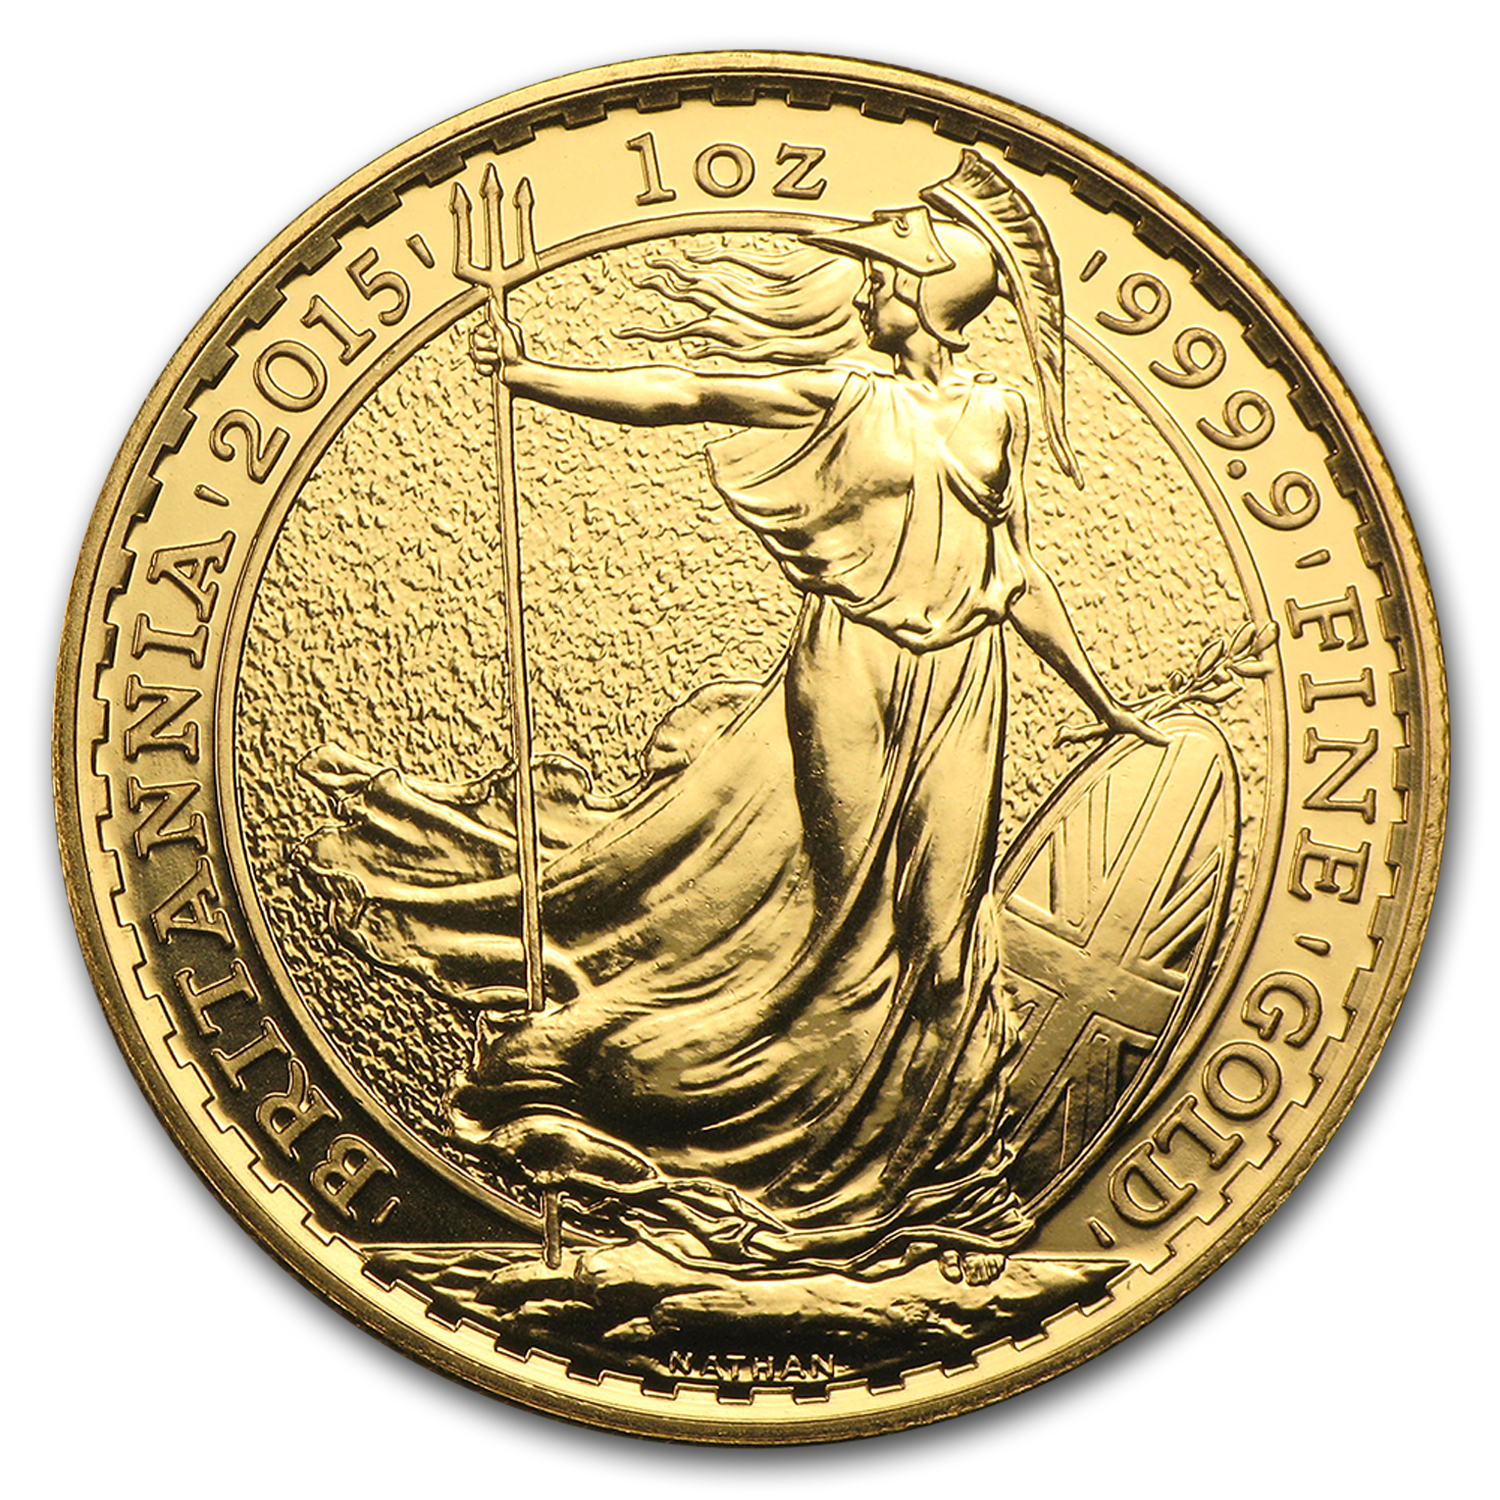 2015 Great Britain 1 oz Gold Britannia BU